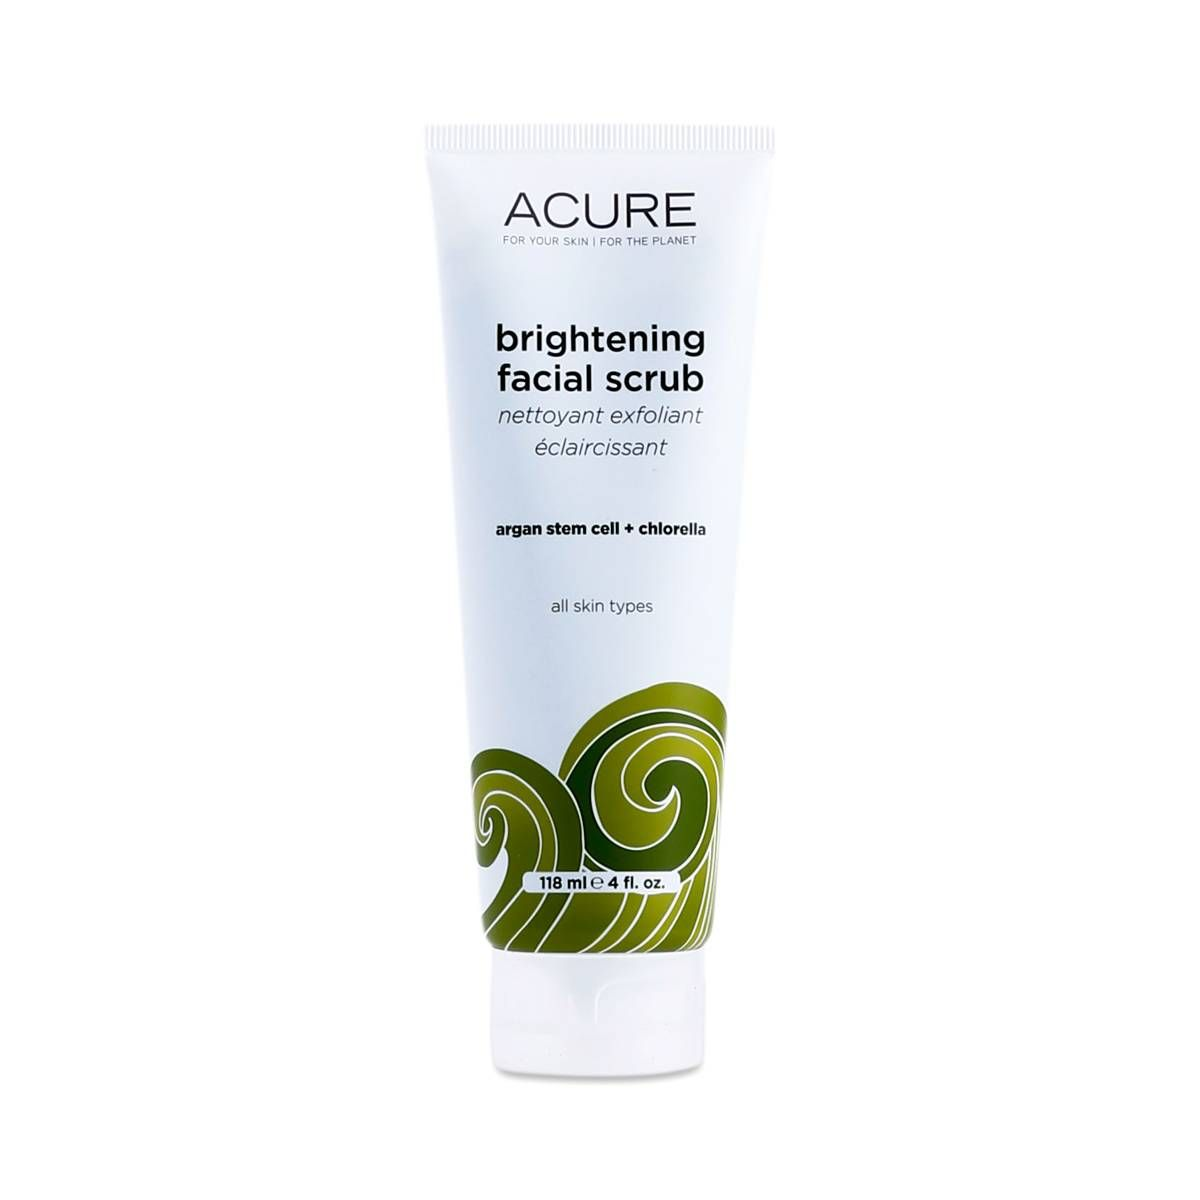 ACURE Radically Rejuvenating Facial Scrub (With Images